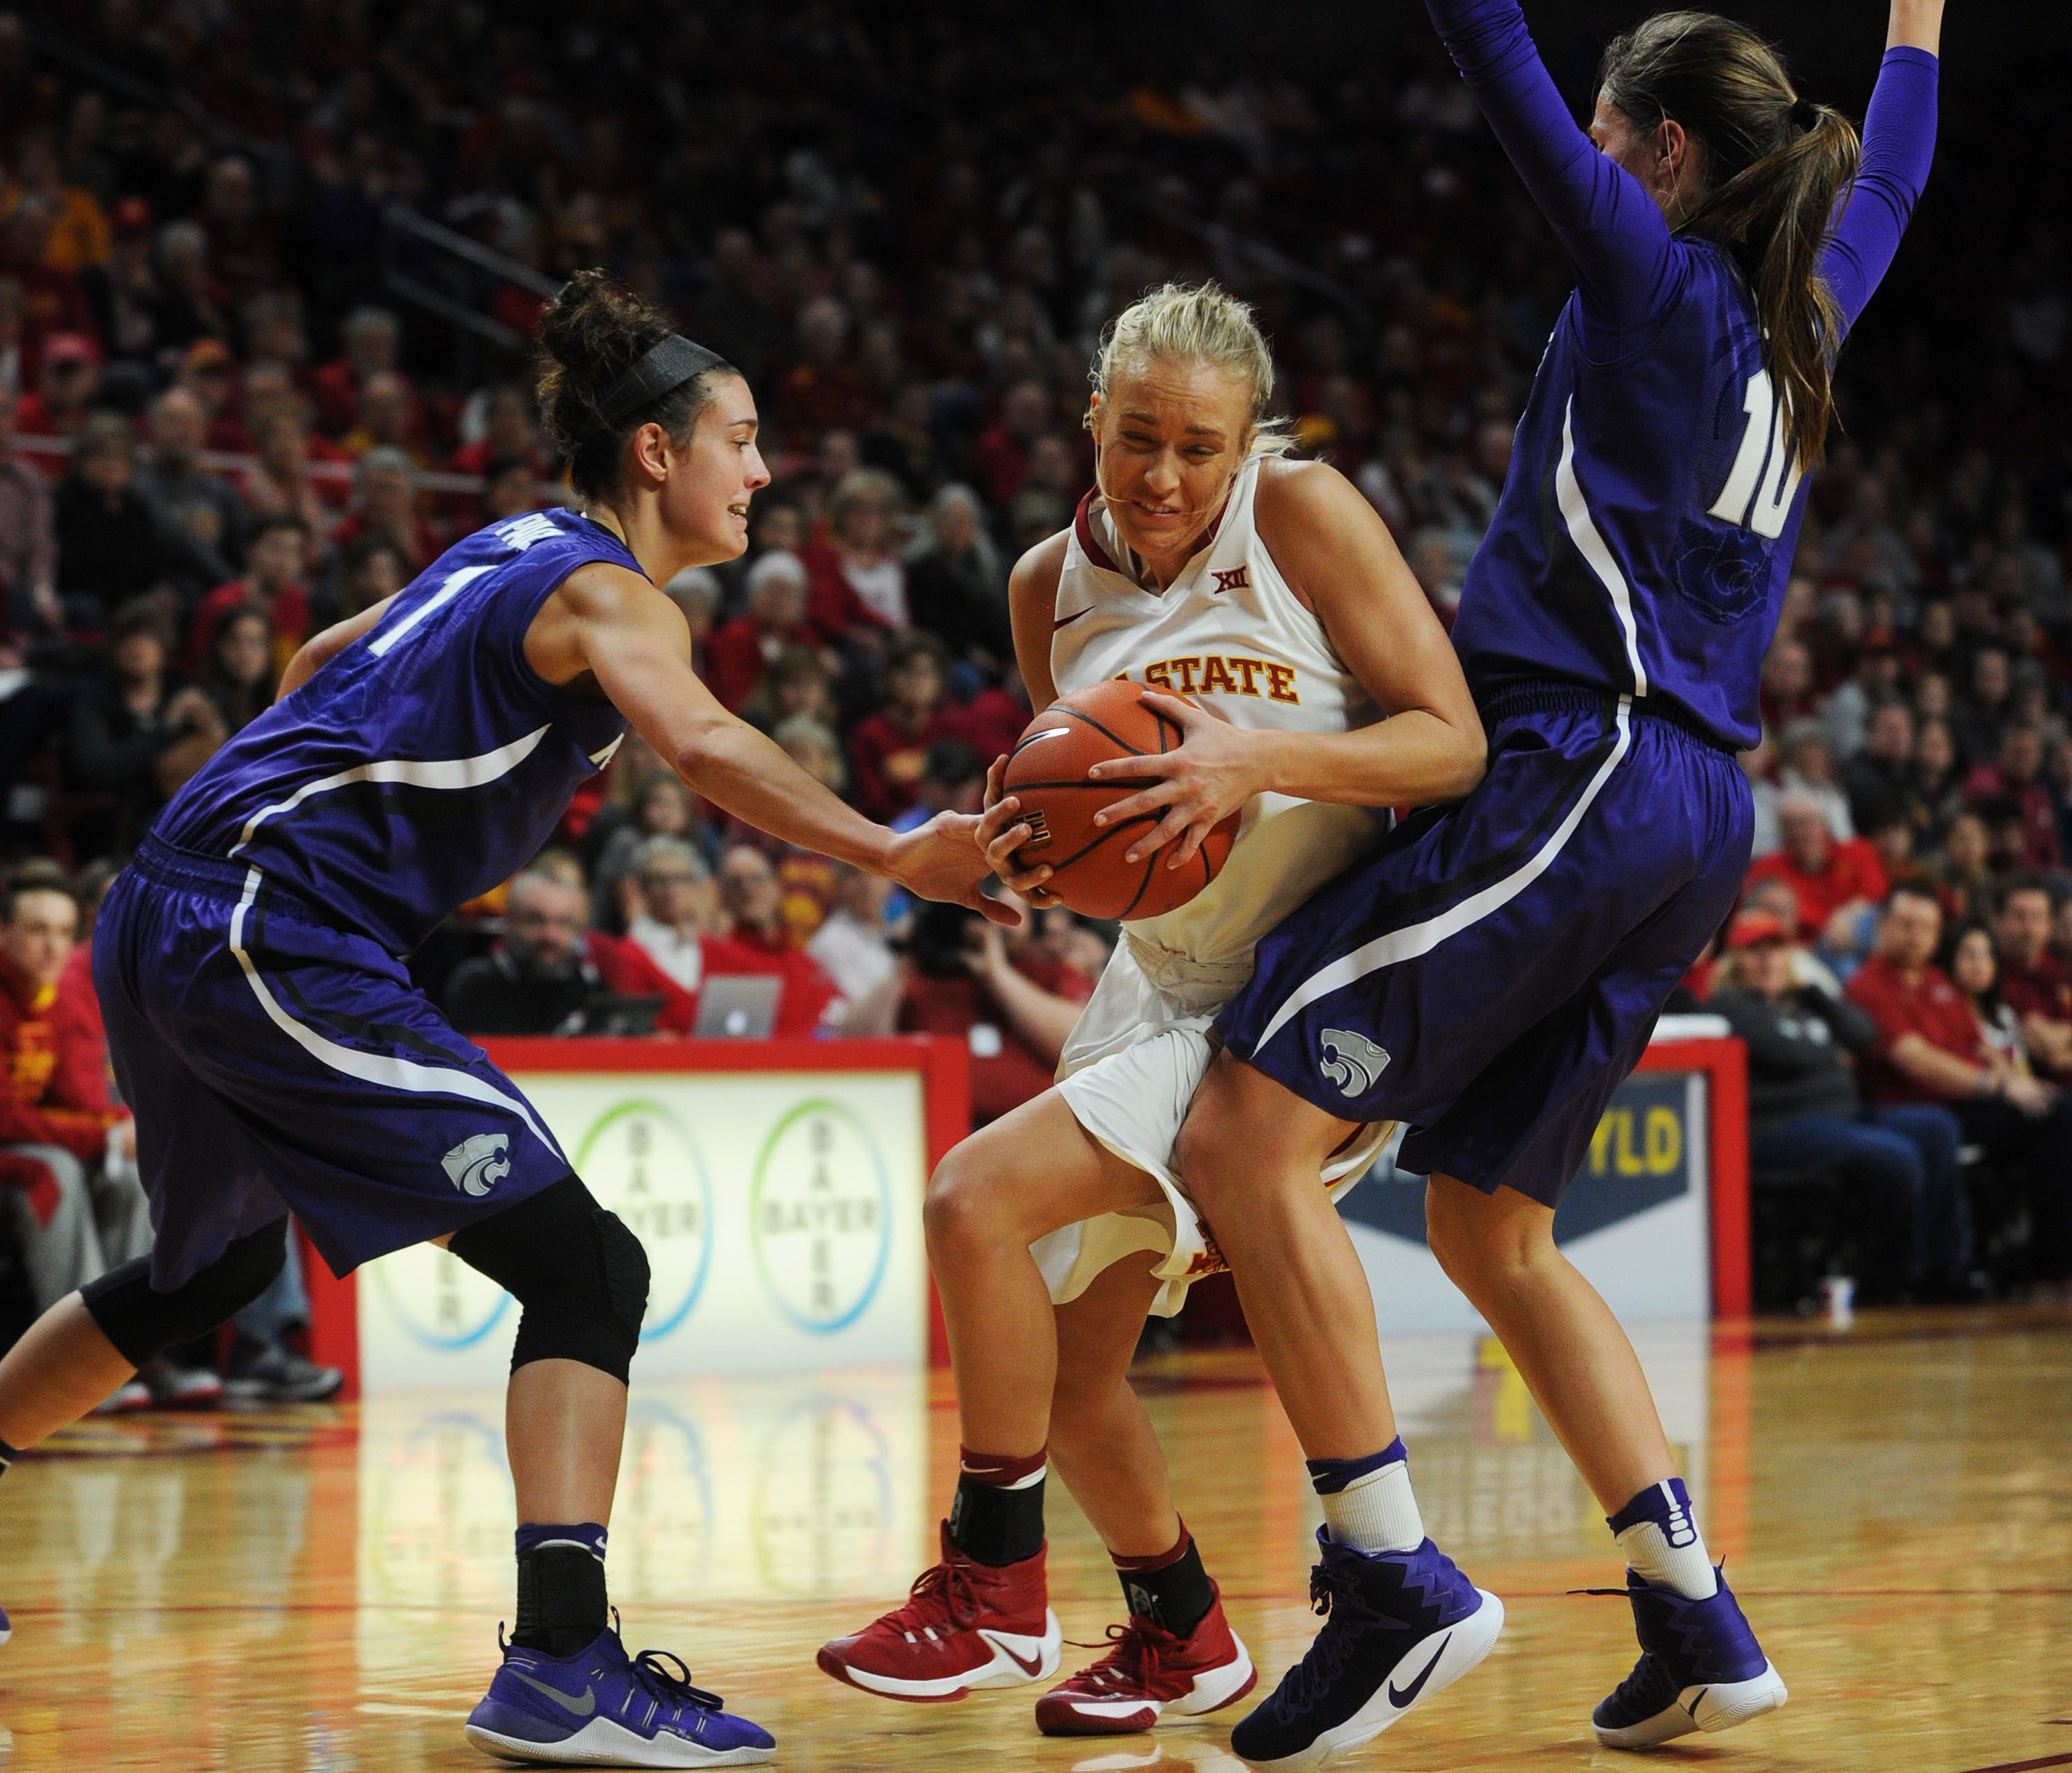 Iowa State's Jadda Buckley drives to the basket between